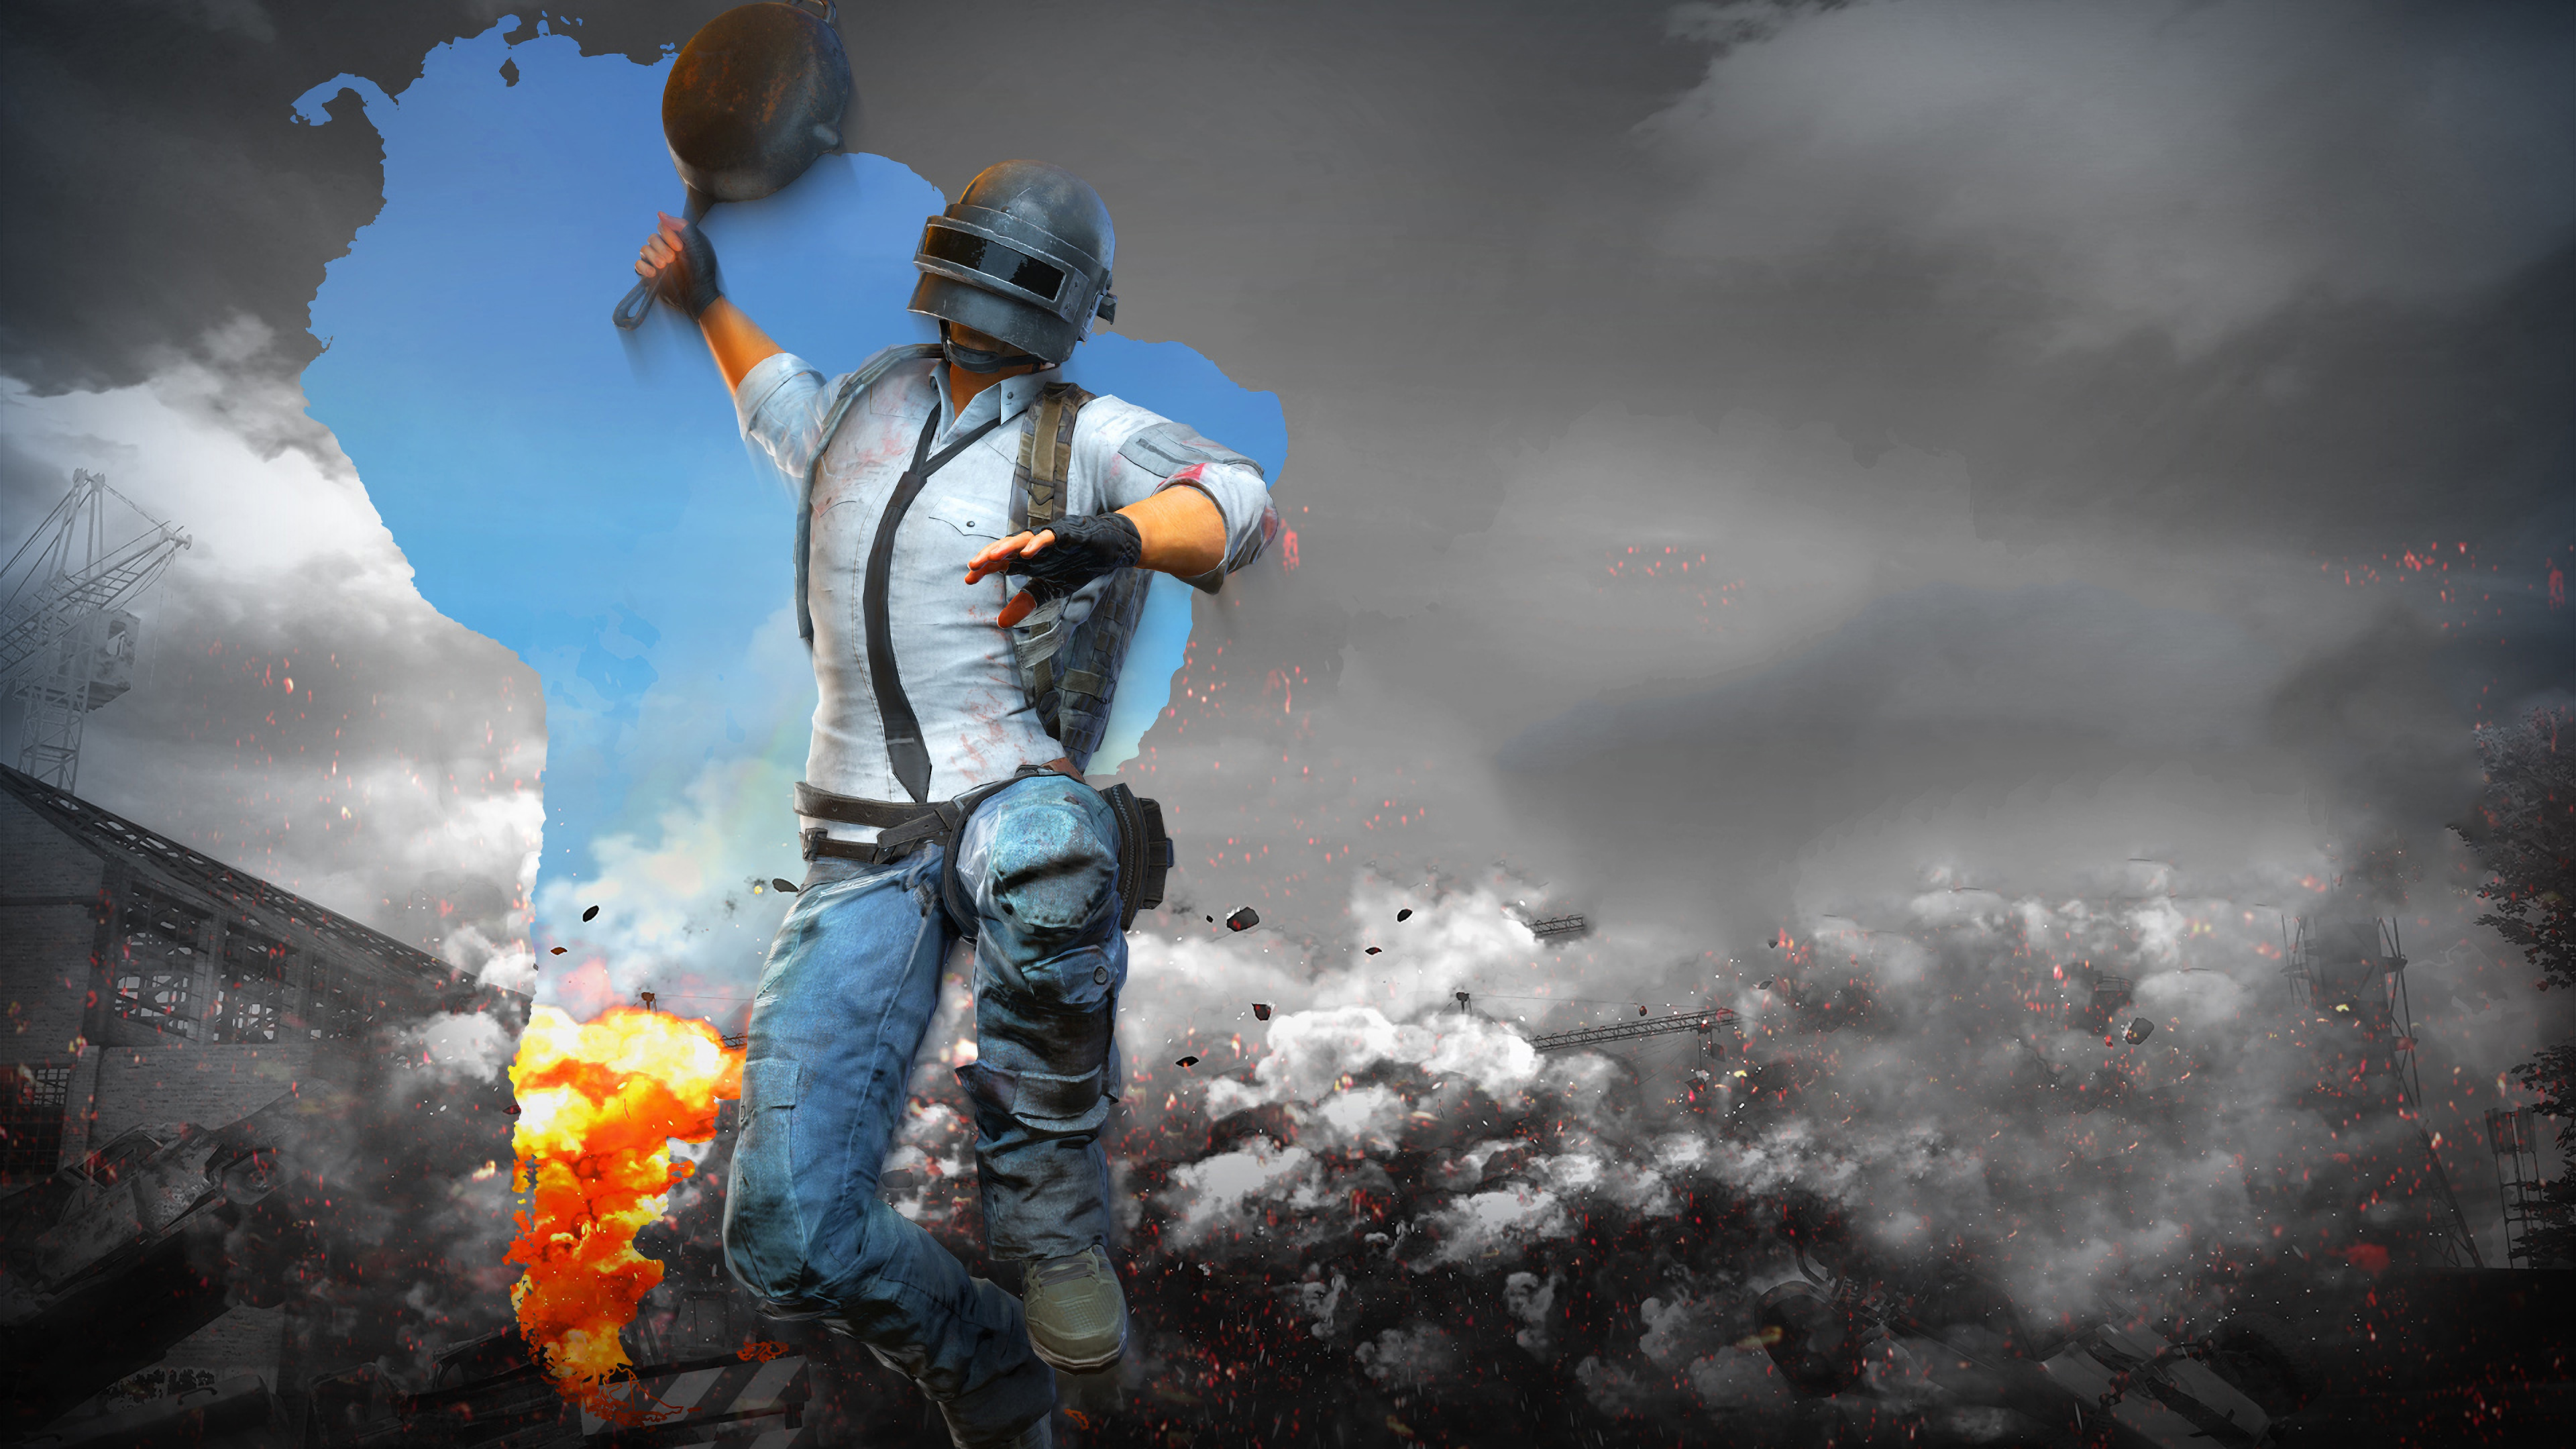 Pubg Hd Wallpaper: PUBG Wallpaper 4K/HD Of 2019 Download